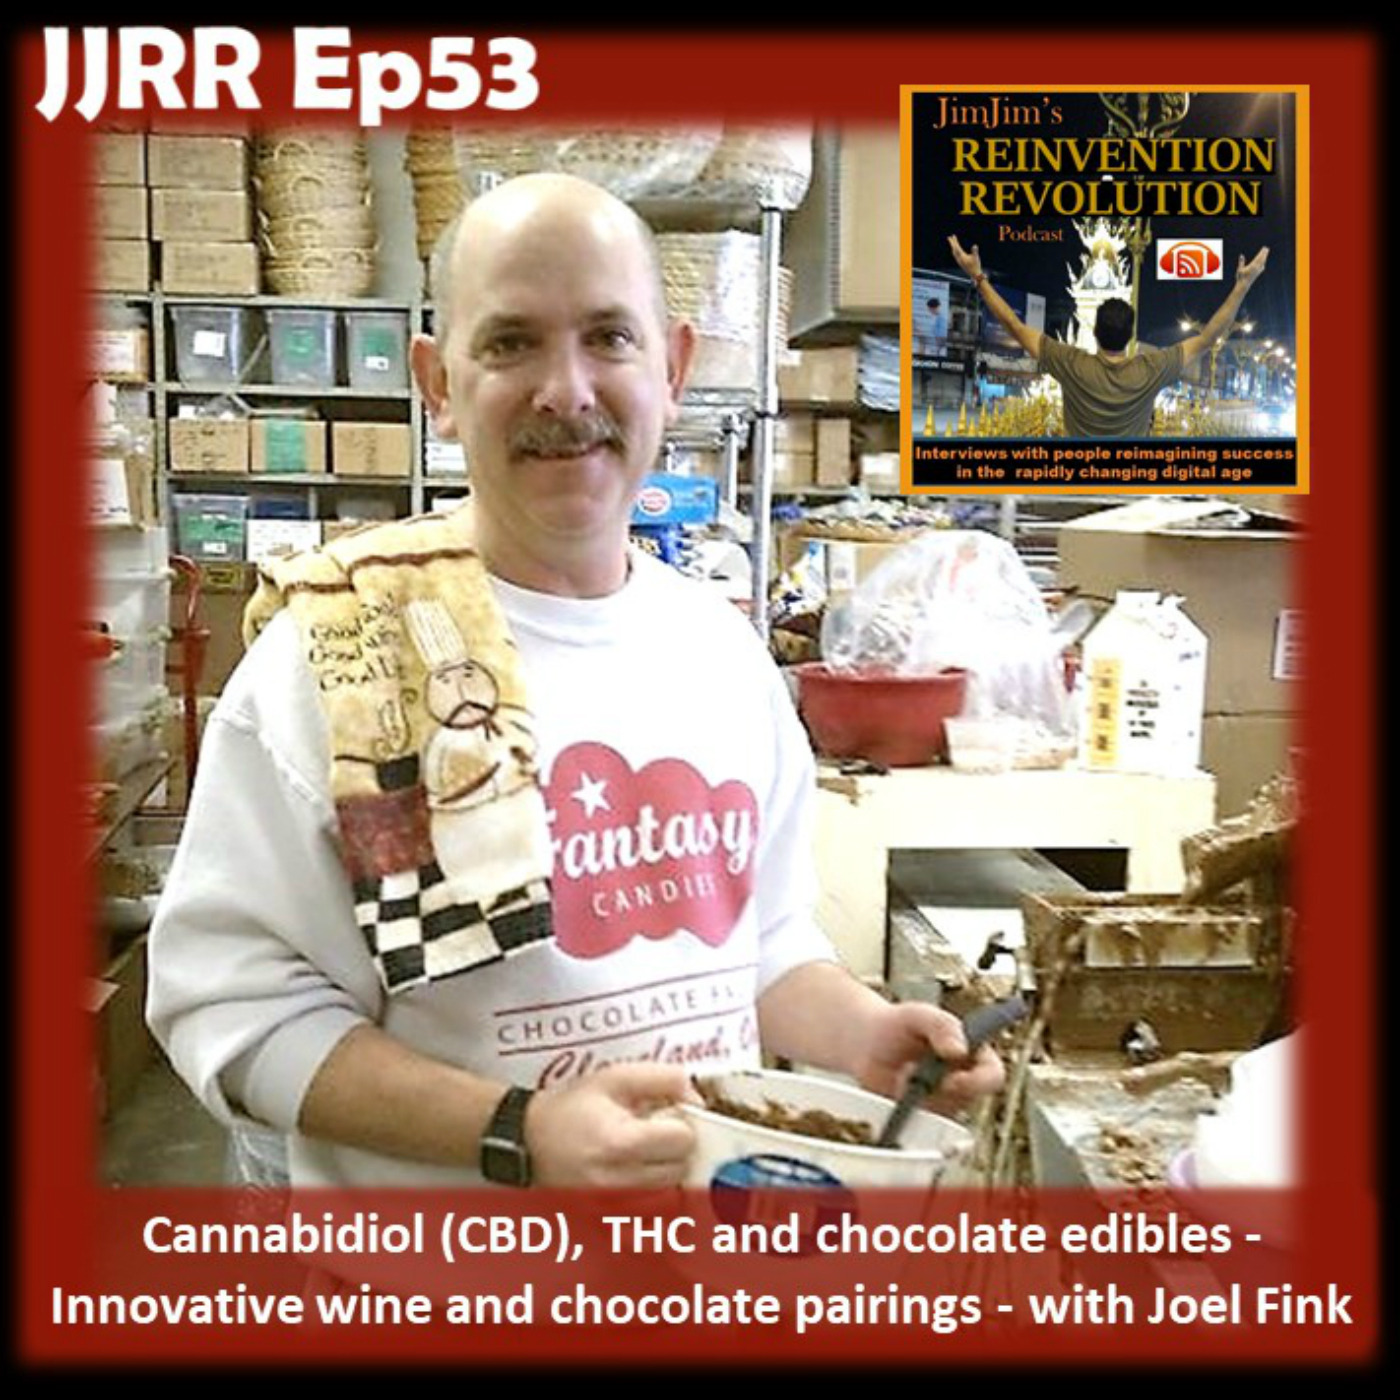 JJRR Ep53 Cannabidiol (CBD), THC and chocolate edibles – Innovative wine and chocolate pairings –  with Joel Fink